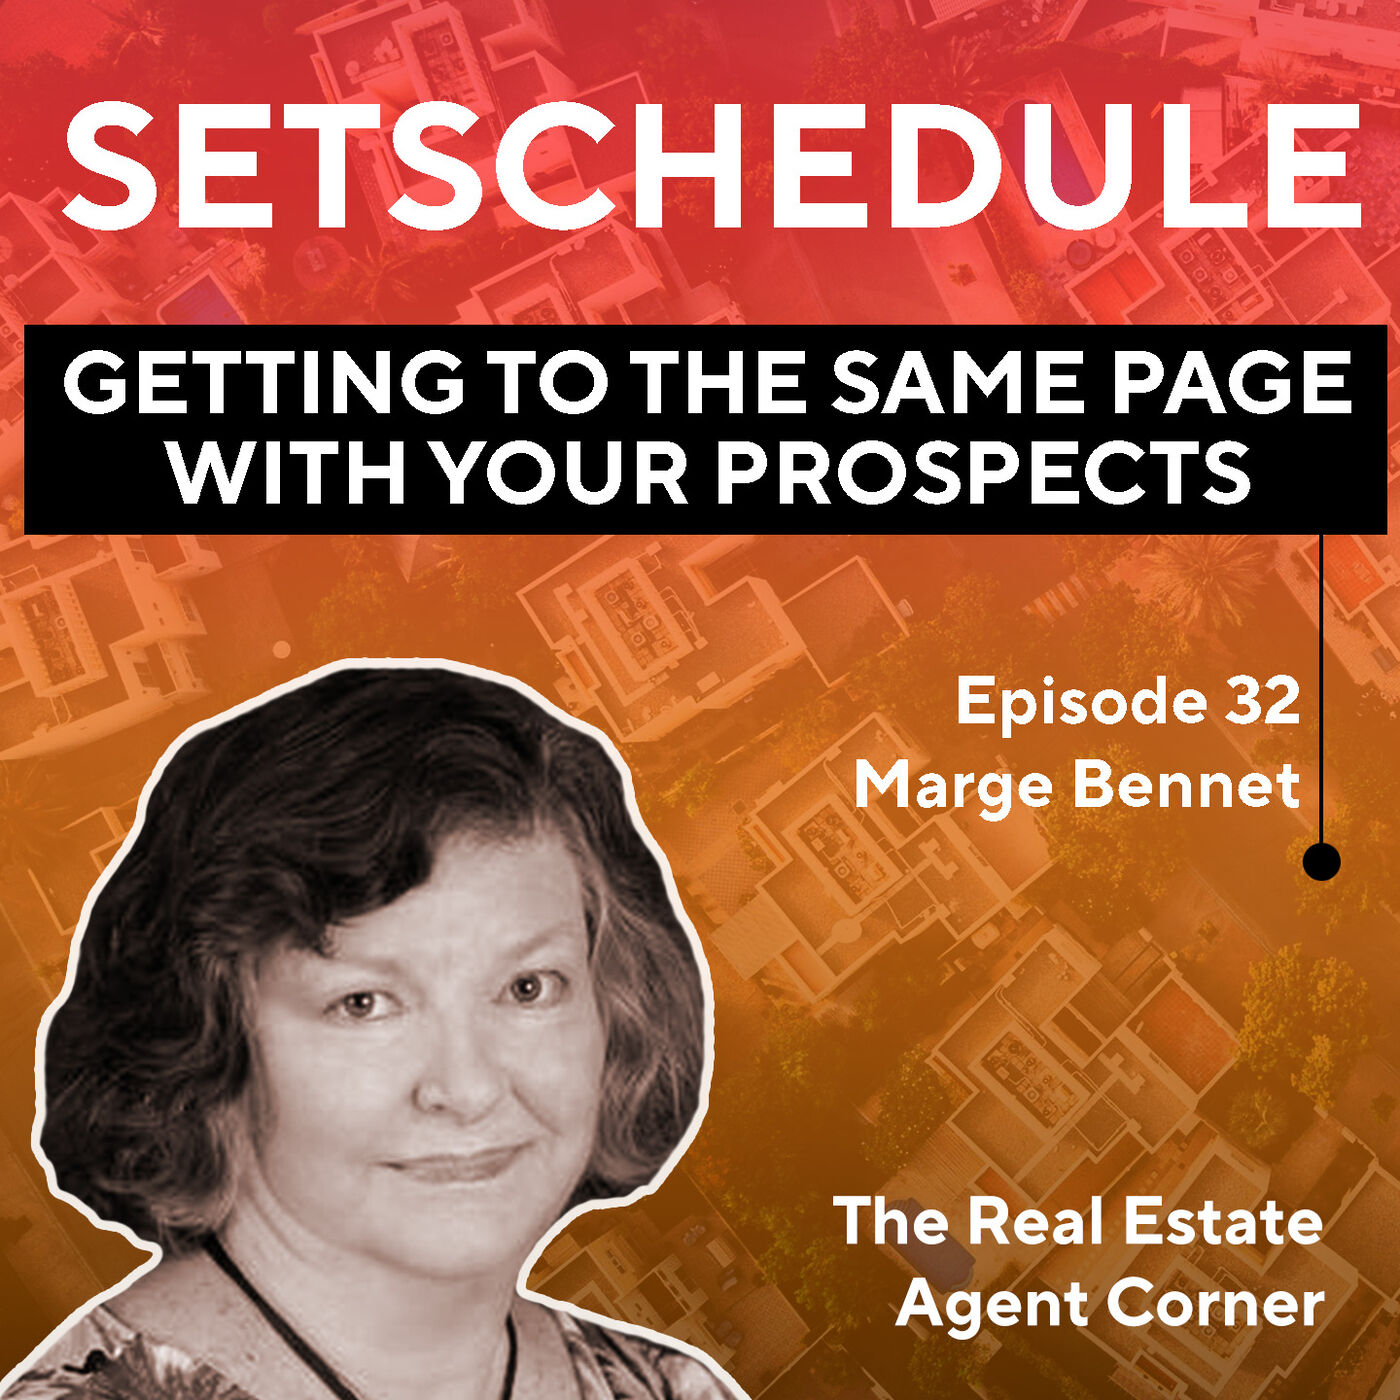 Getting to the Same Page with Your Prospects - Marge Bennett